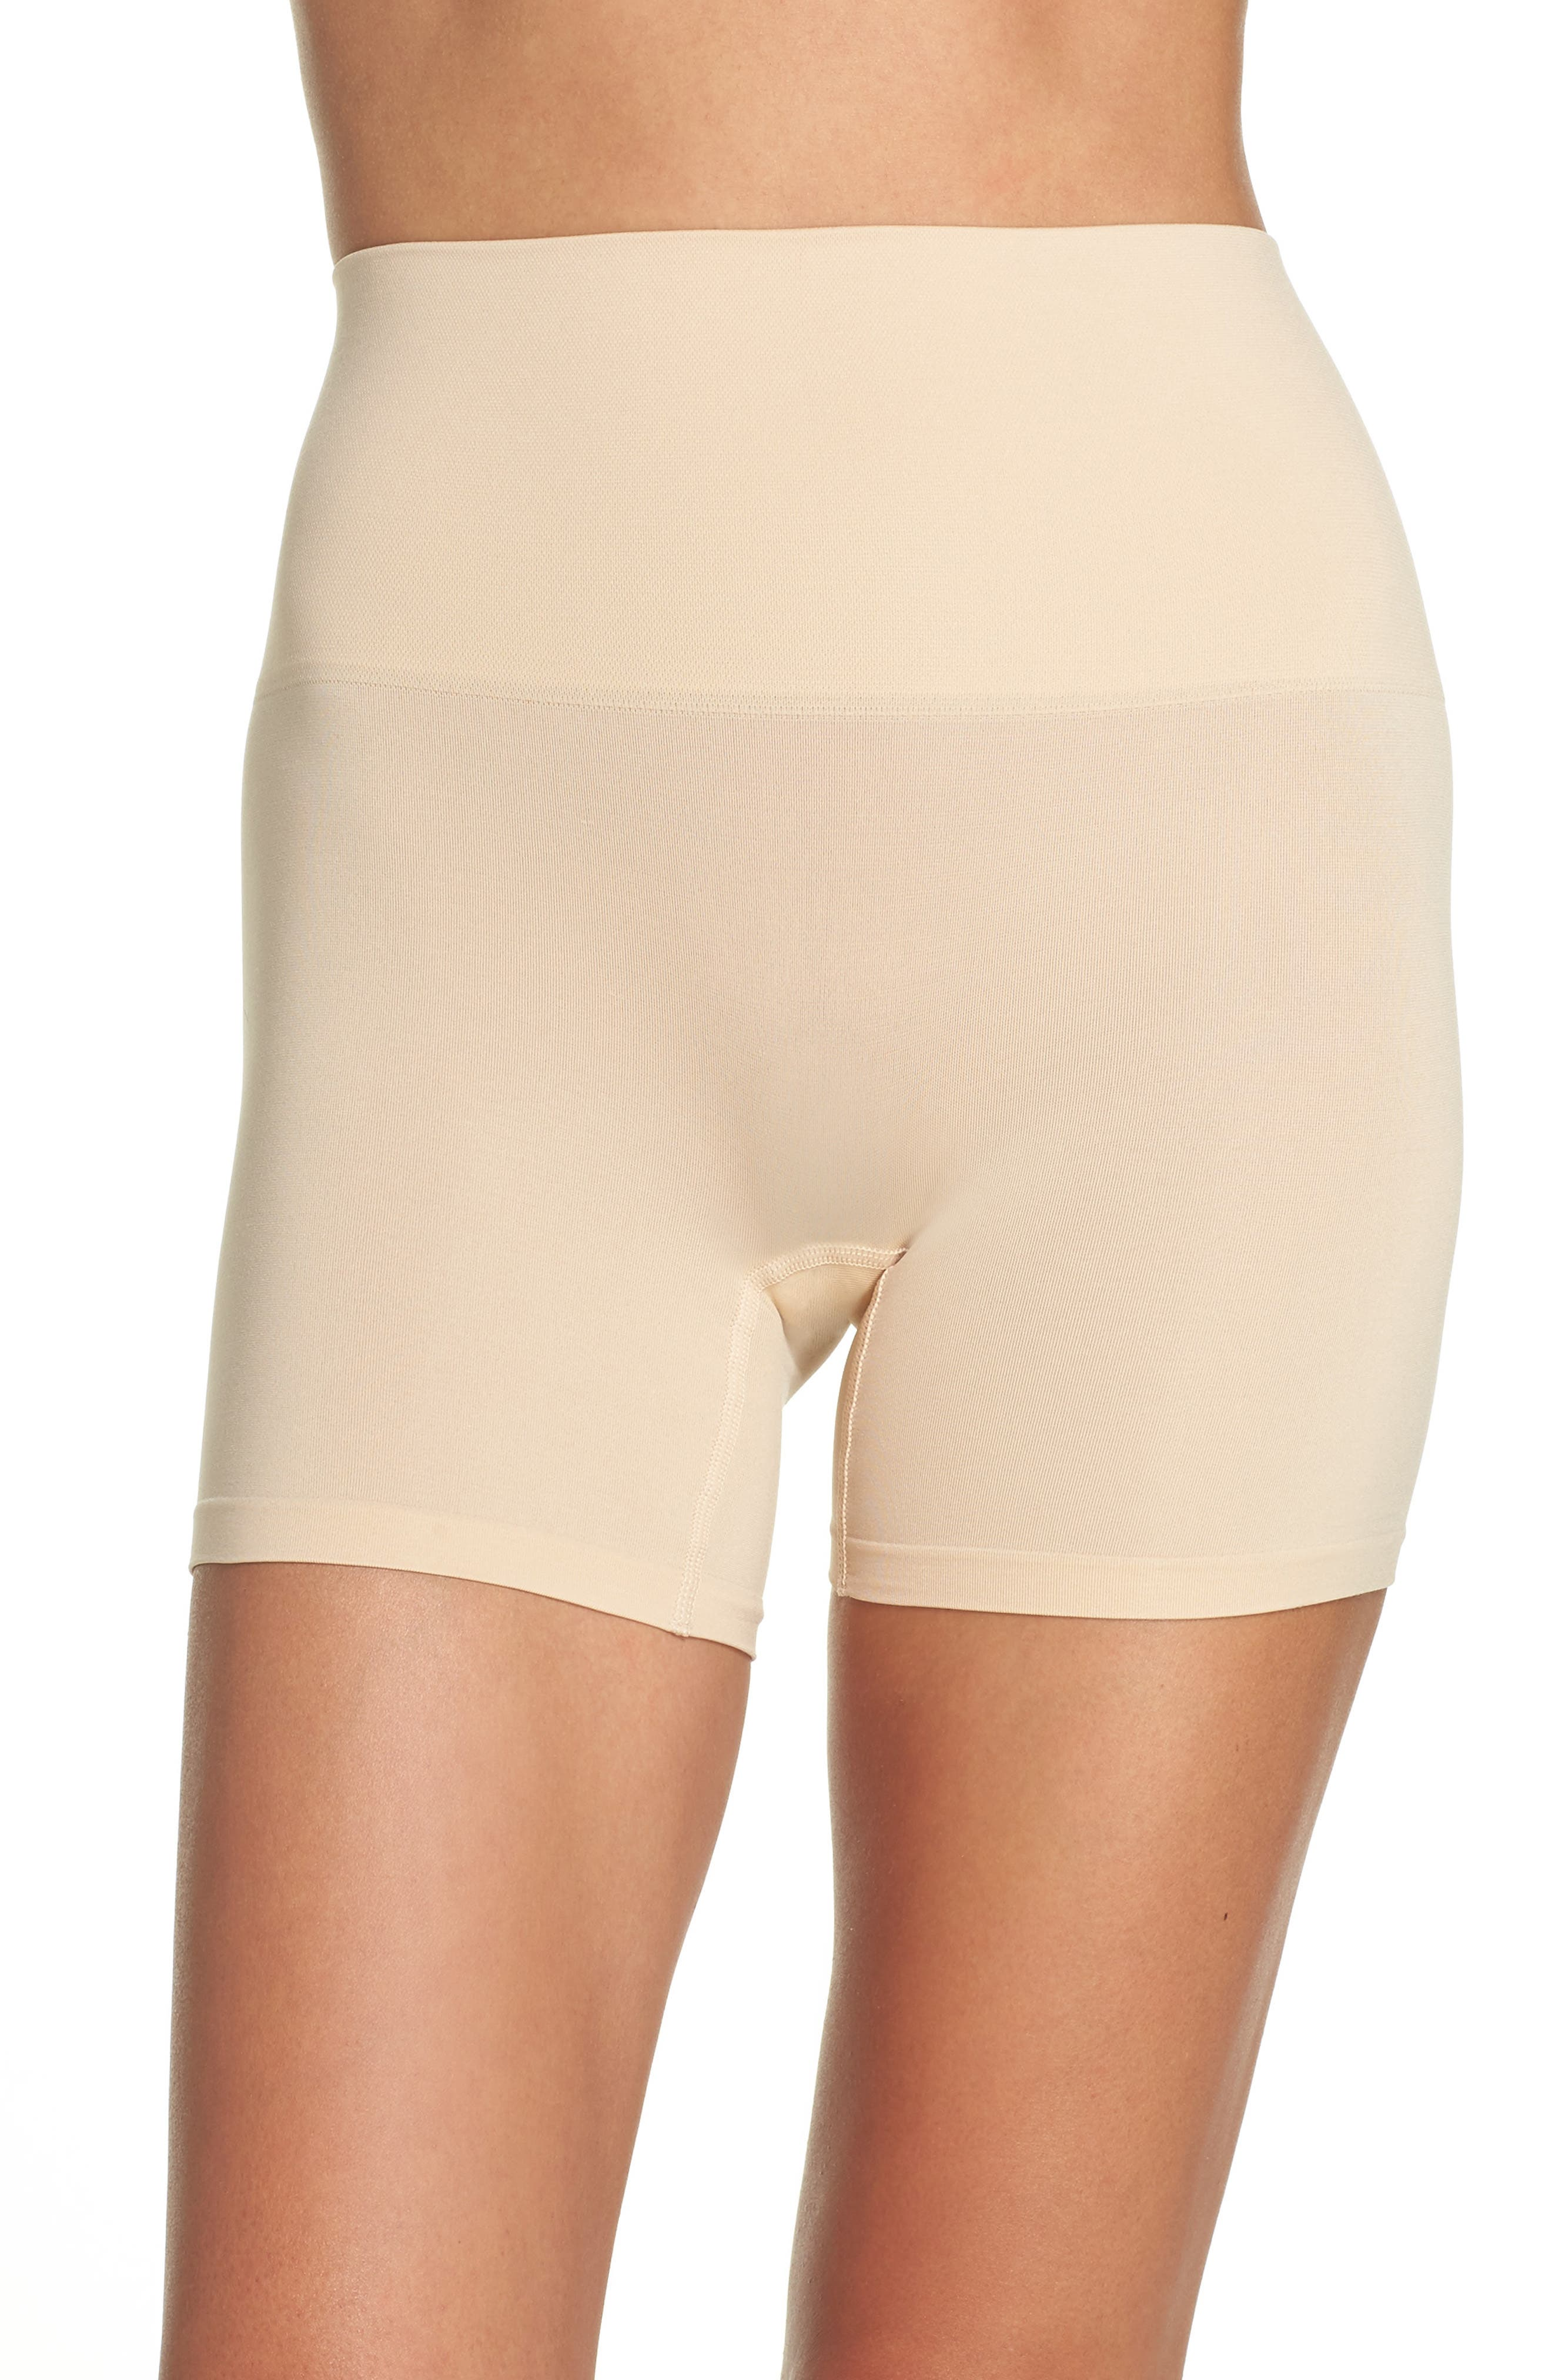 Ultralight Seamless Shaping Shorts,                         Main,                         color, Frappe